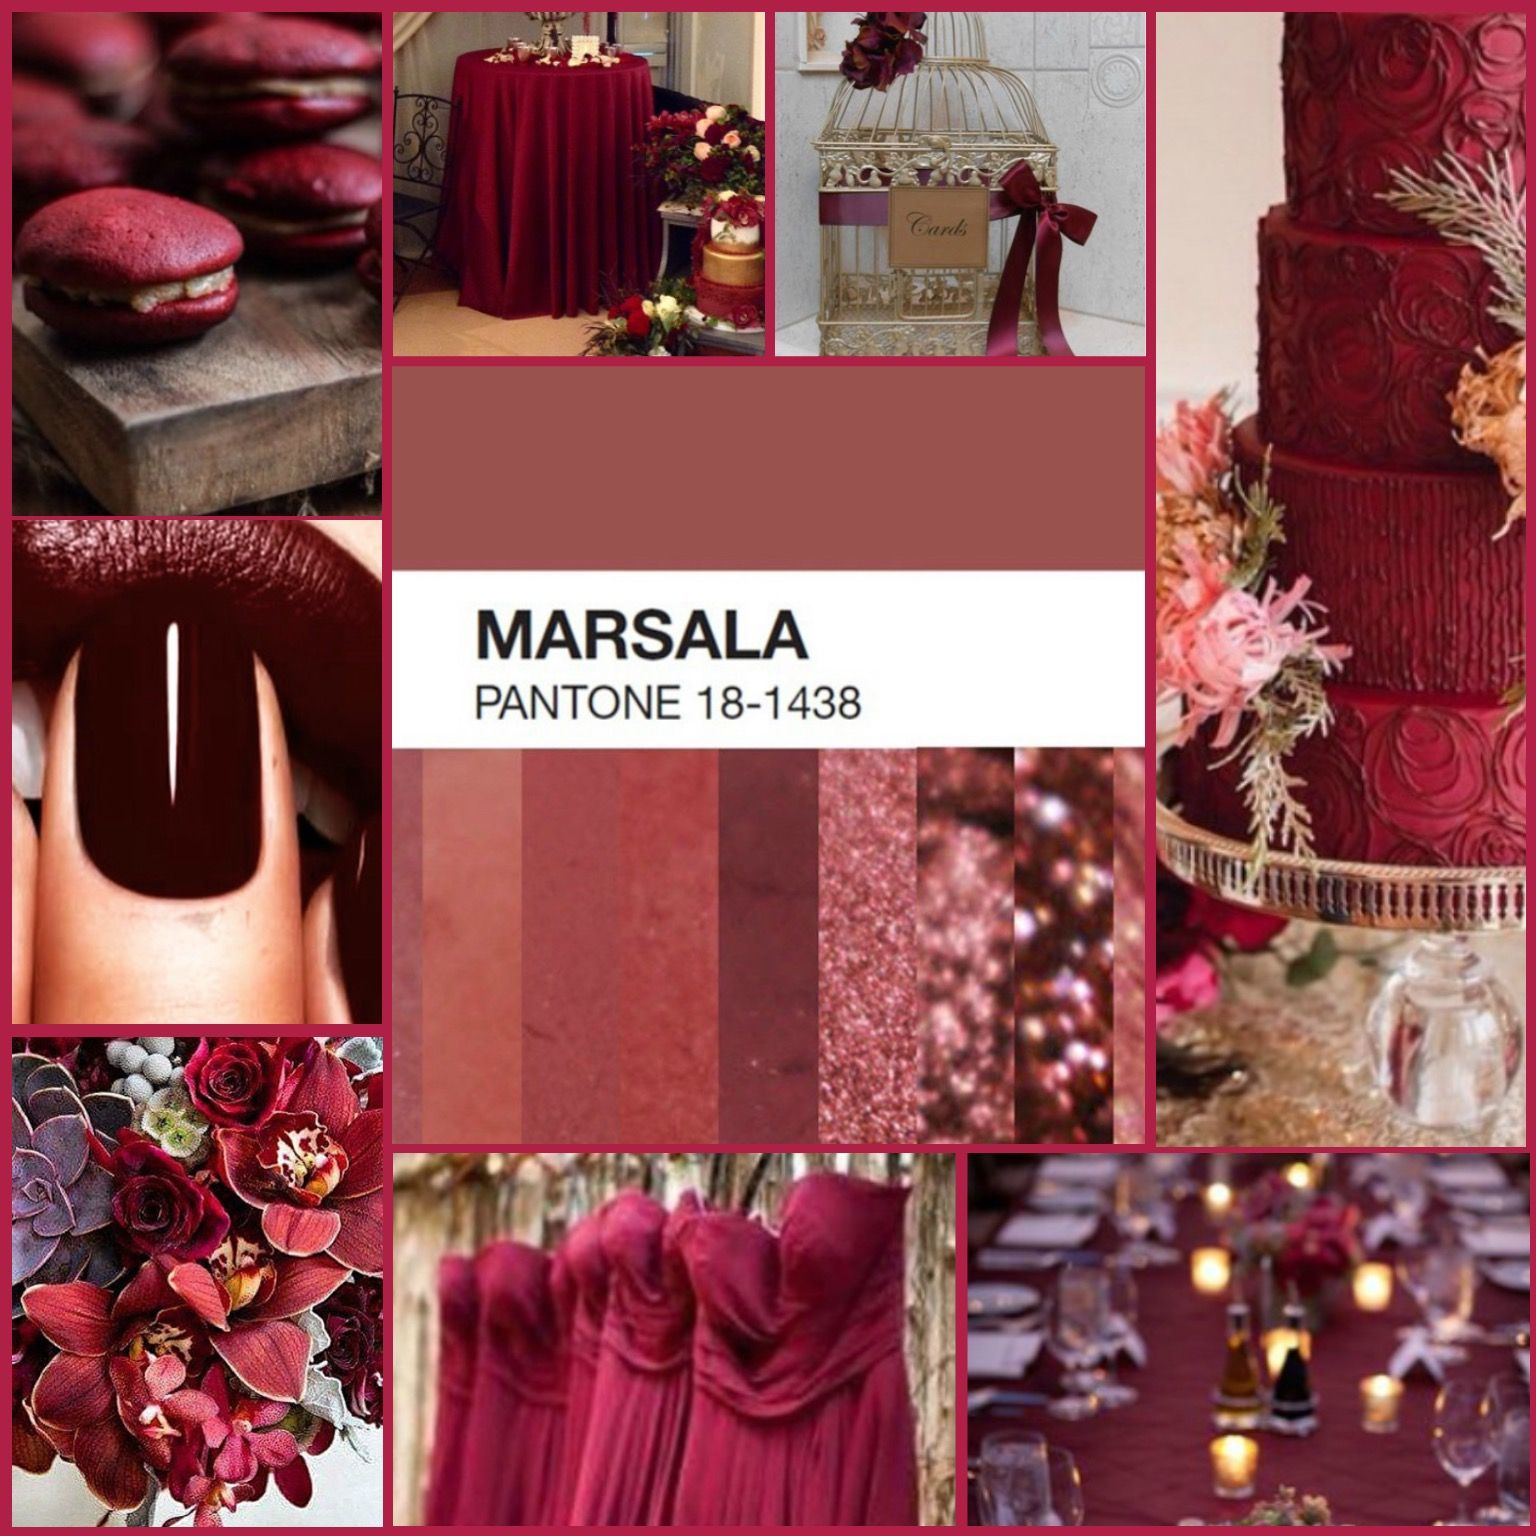 Pantone Colour Masala For 2015 Spice Up You Event 01895259 363 Www Chaircoverdepot Co Uk Winter Wedding Inspiration Wedding Colors Winter Wedding